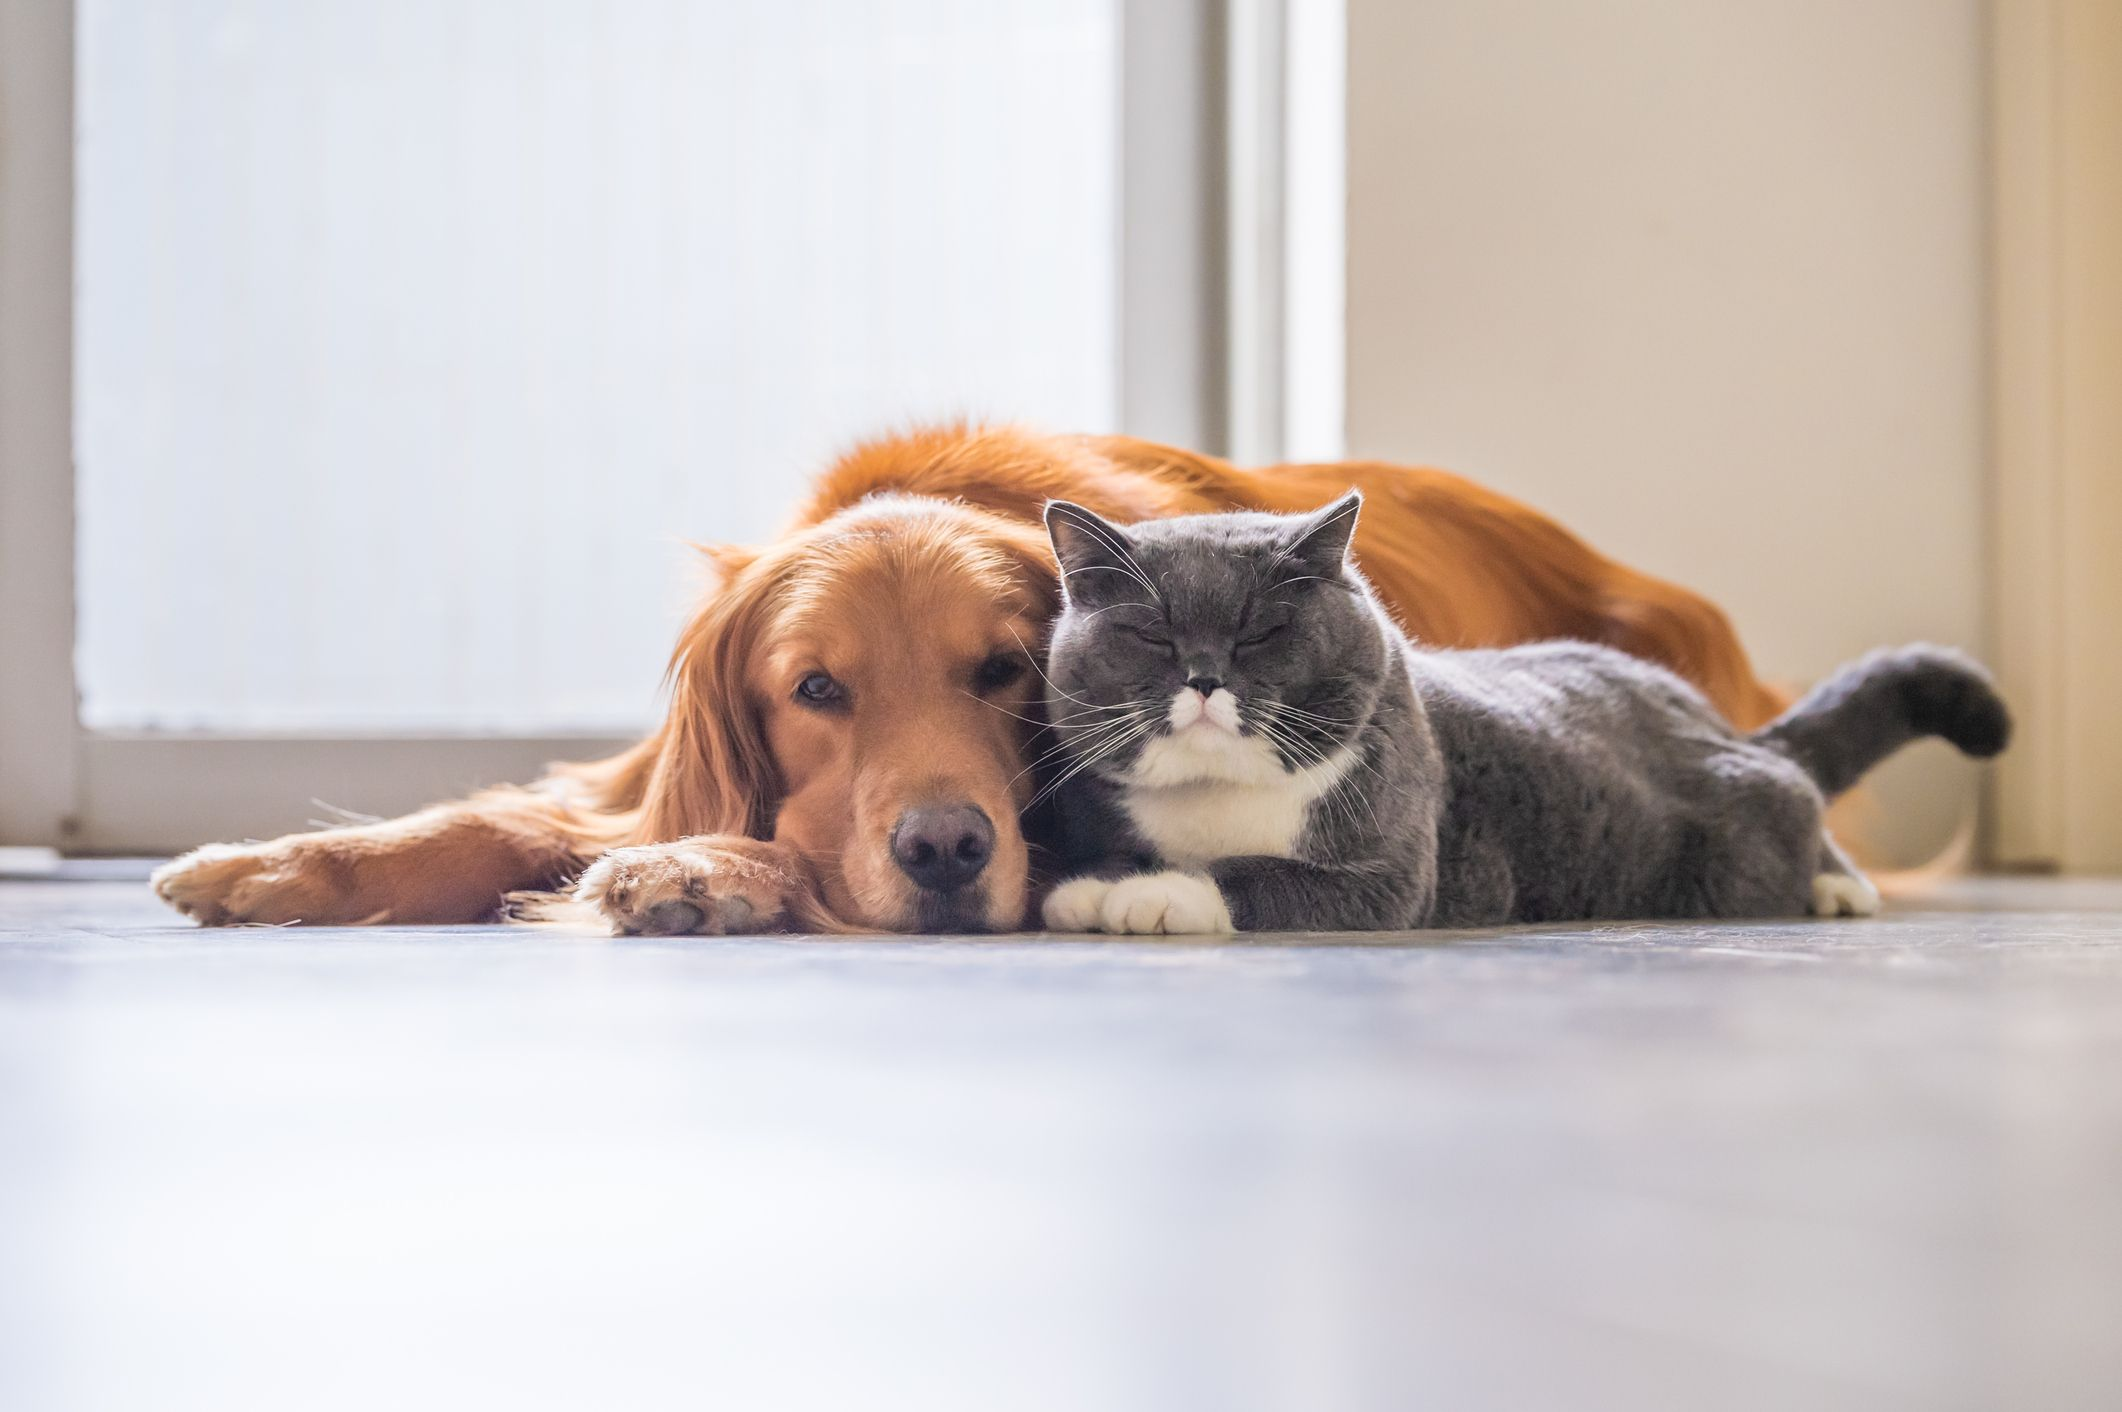 13 Dogs That Are Good With Cats